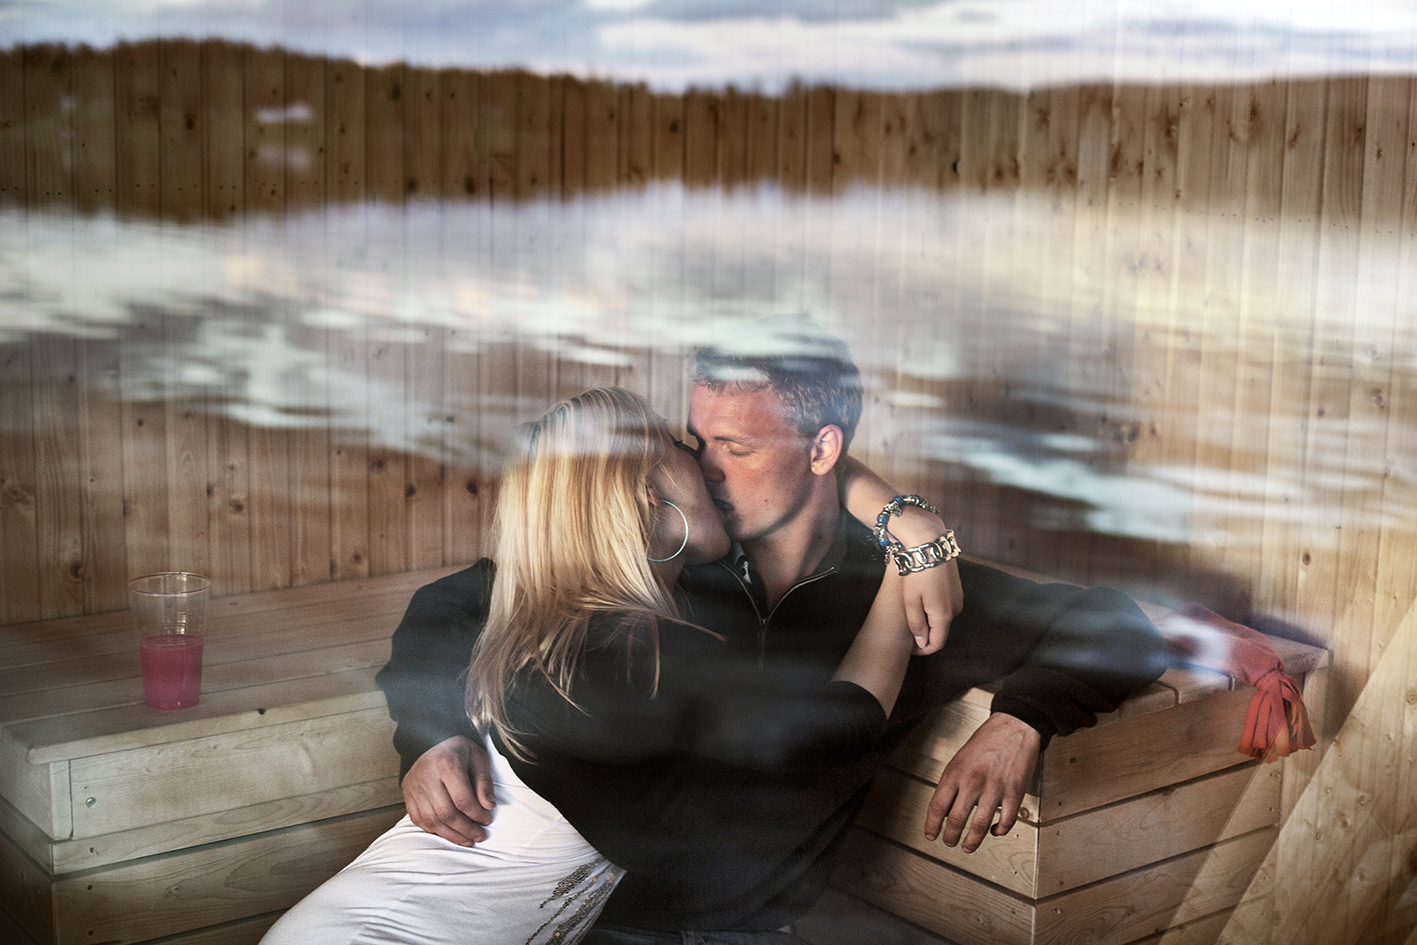 Midsummer night's dream, the sun seems to never disappear. It´s the brightest day of the year. Ragna Asjölander and Emil Karlsson has inaugurated there own carved sauna raft in Volgsjön.